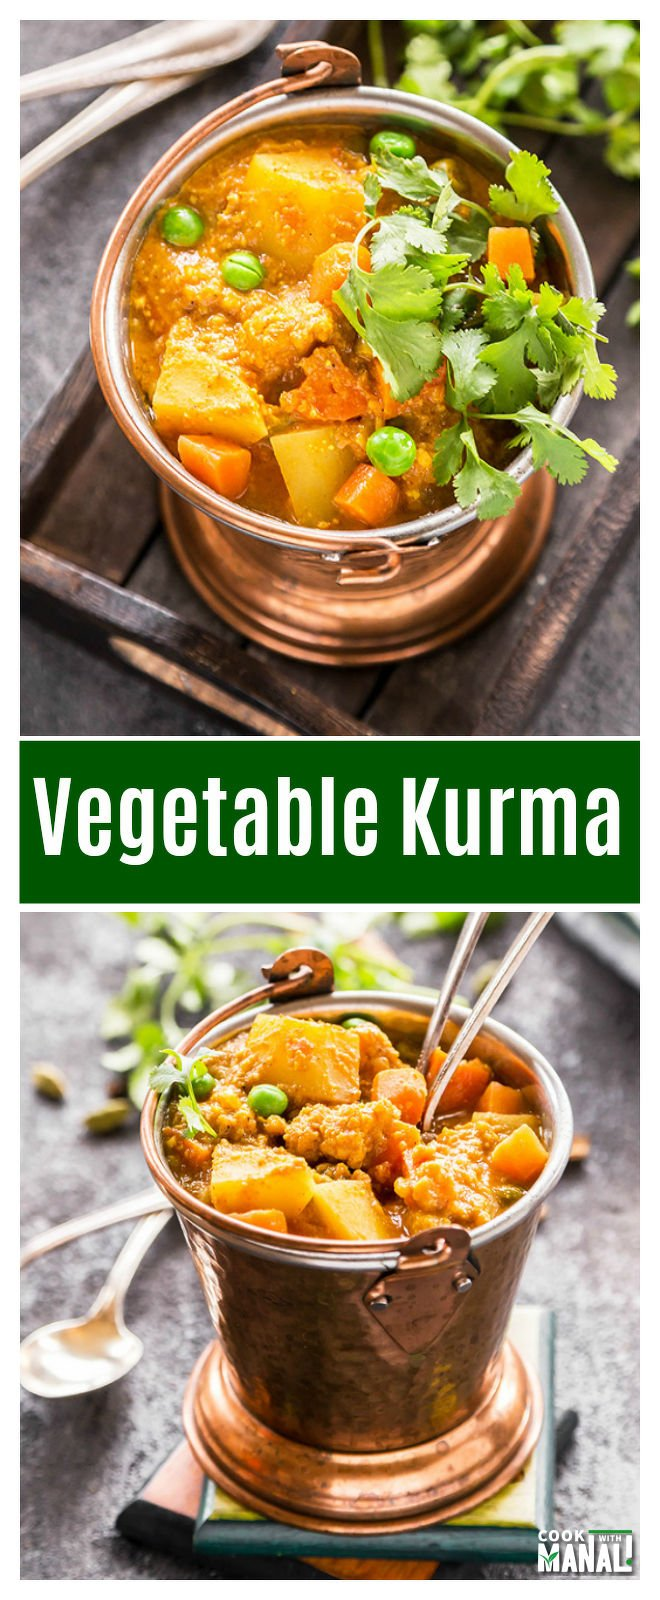 VEGETABLE KURMA COOK WITH MANALI